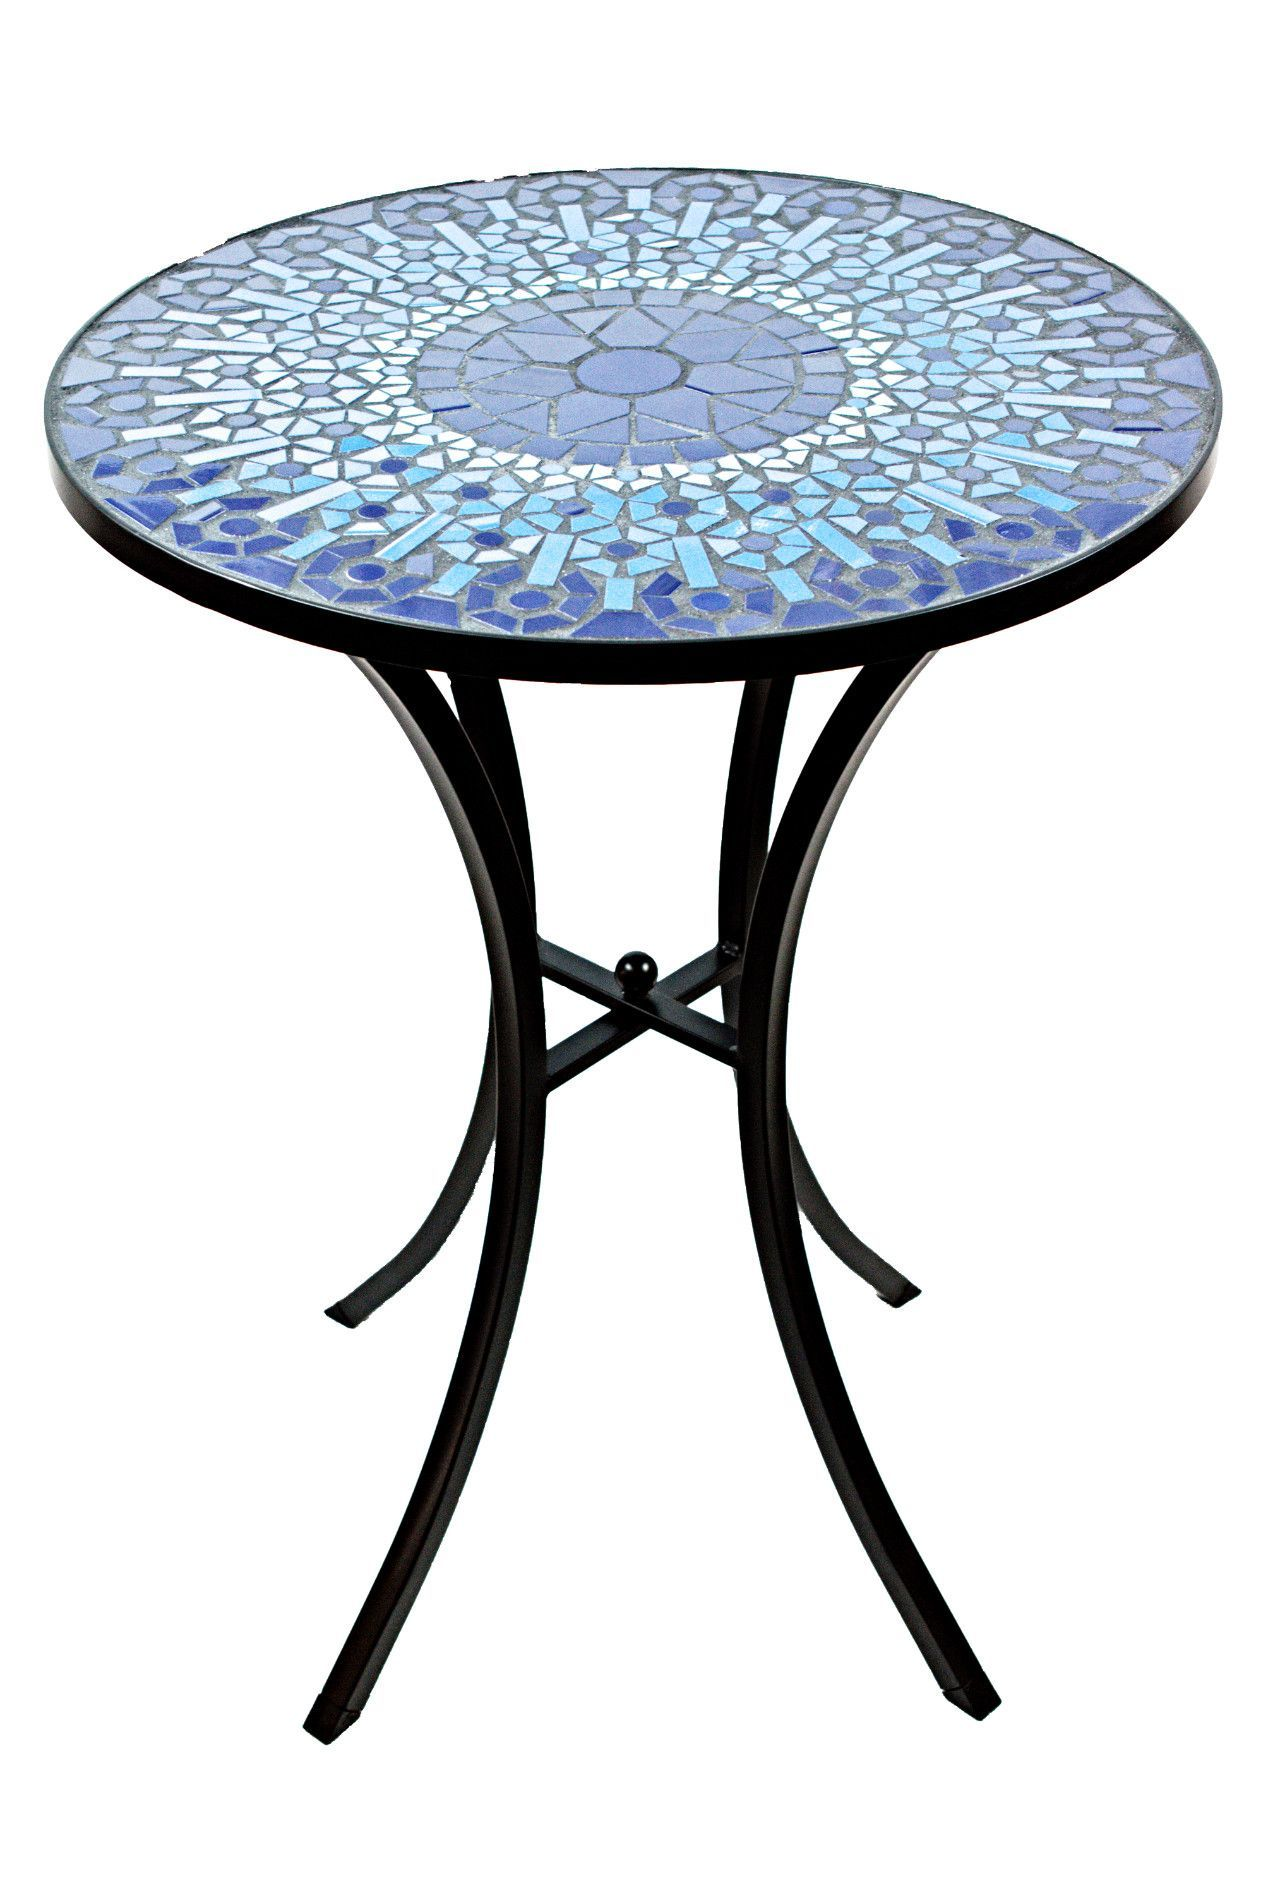 mosaic accent table mosaico art furniture outdoor this ceramic tile adds elegance any indoor decor the intricate pattern handcrafted for impeccable finish and ryobi counter high